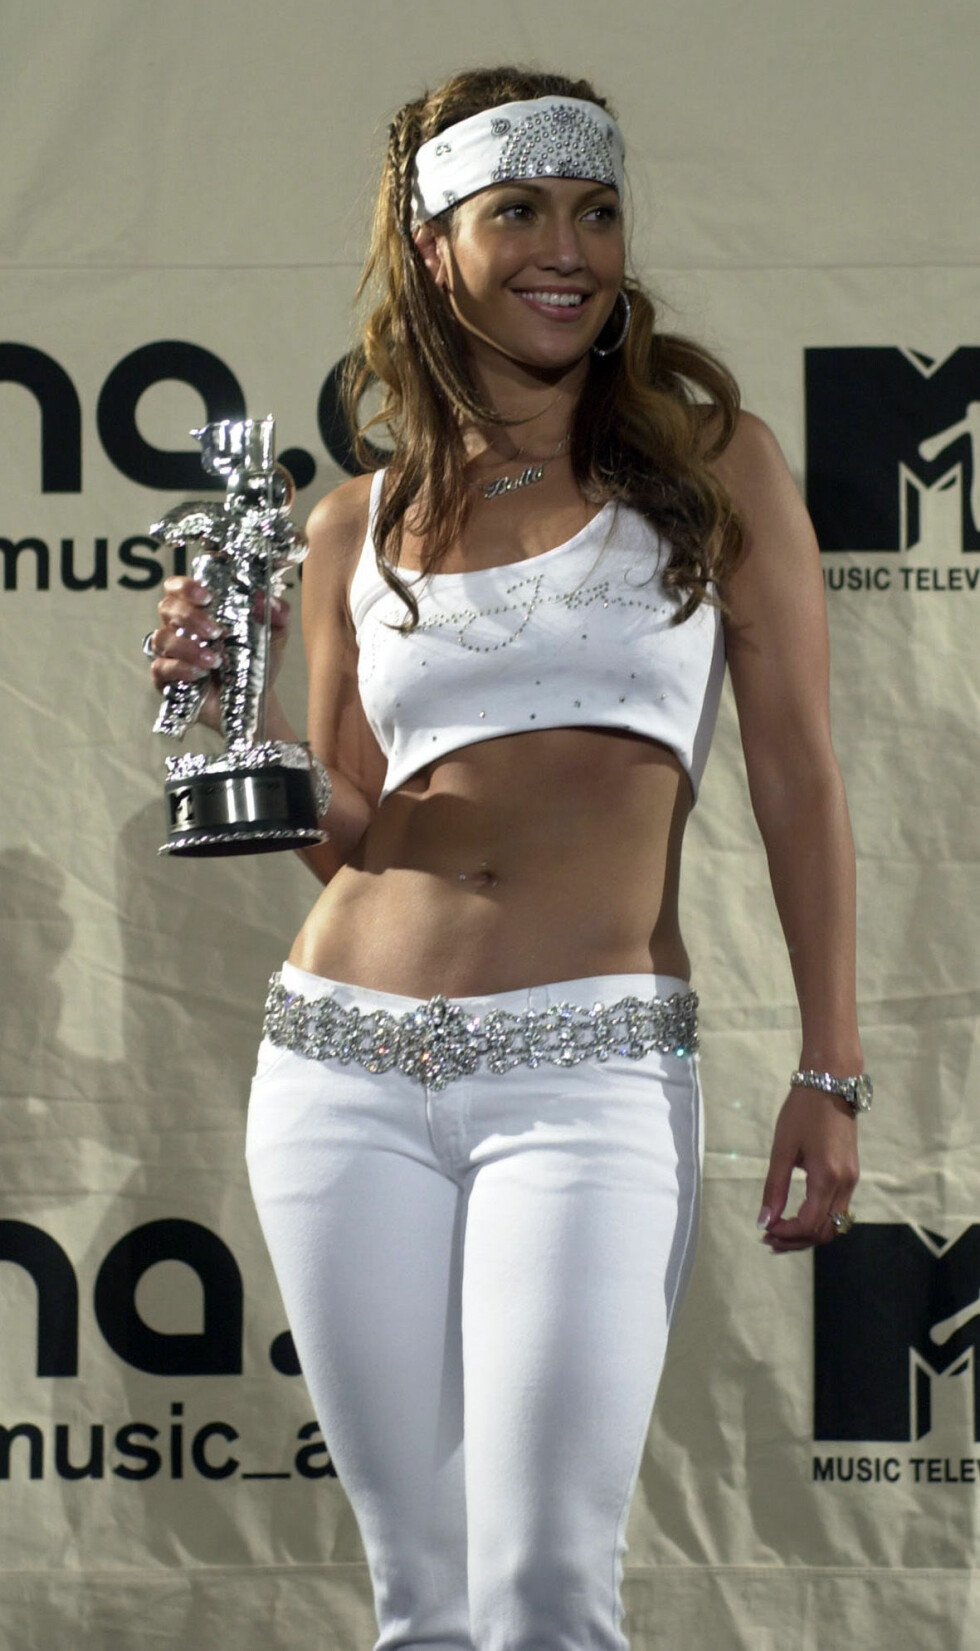 "Jennifer Lopez med hennes Best Dance Award for hennes sang  ""Waiting For Tonight"" på MTV Music Video Awards i 2000. Foto: NTB Scanpix"